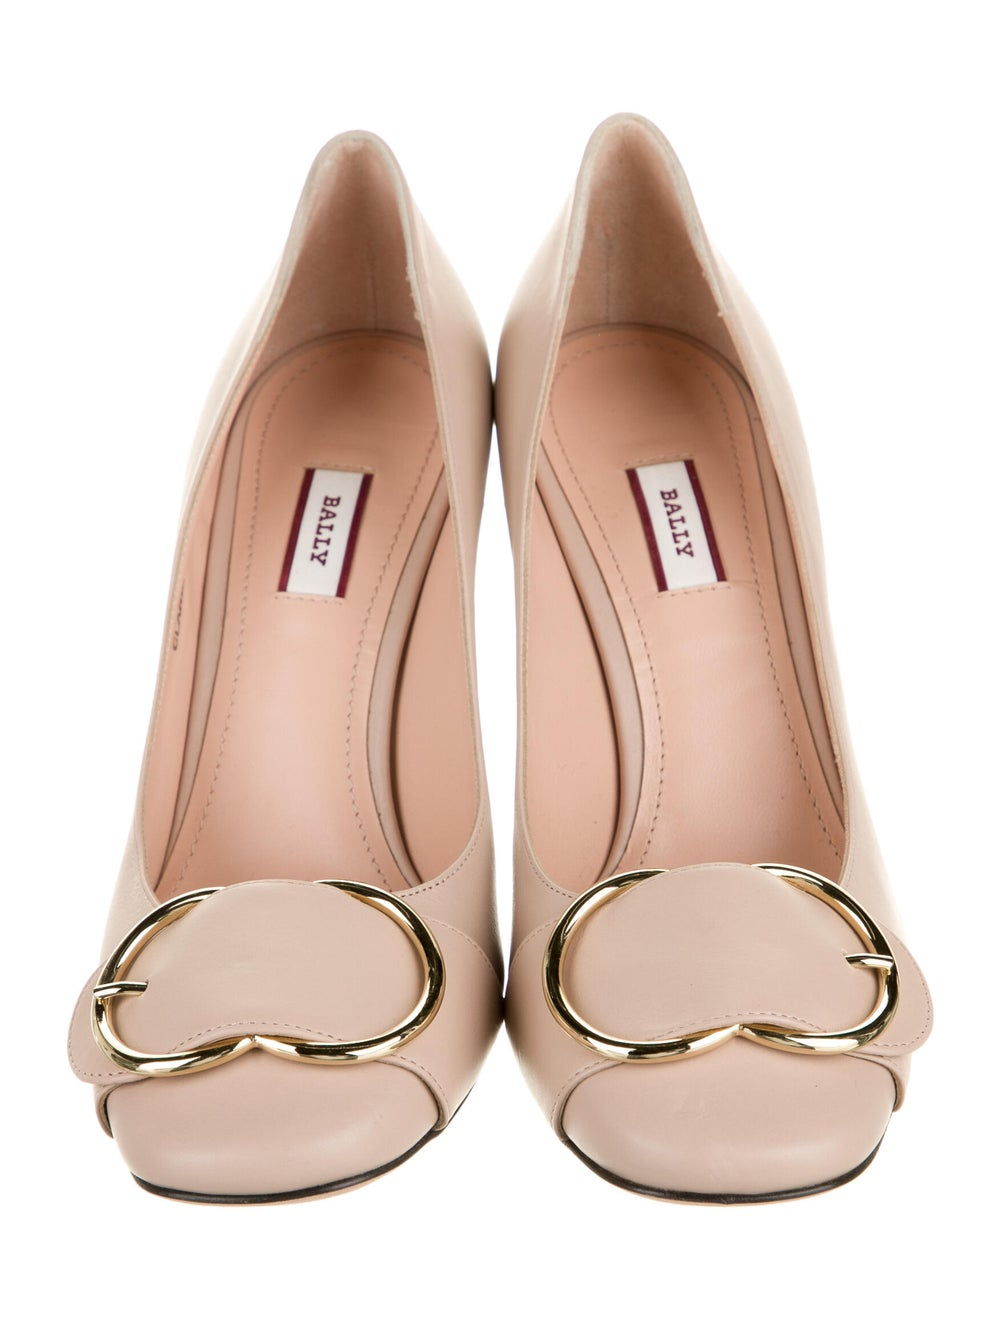 Bally Leather Pumps - image 3